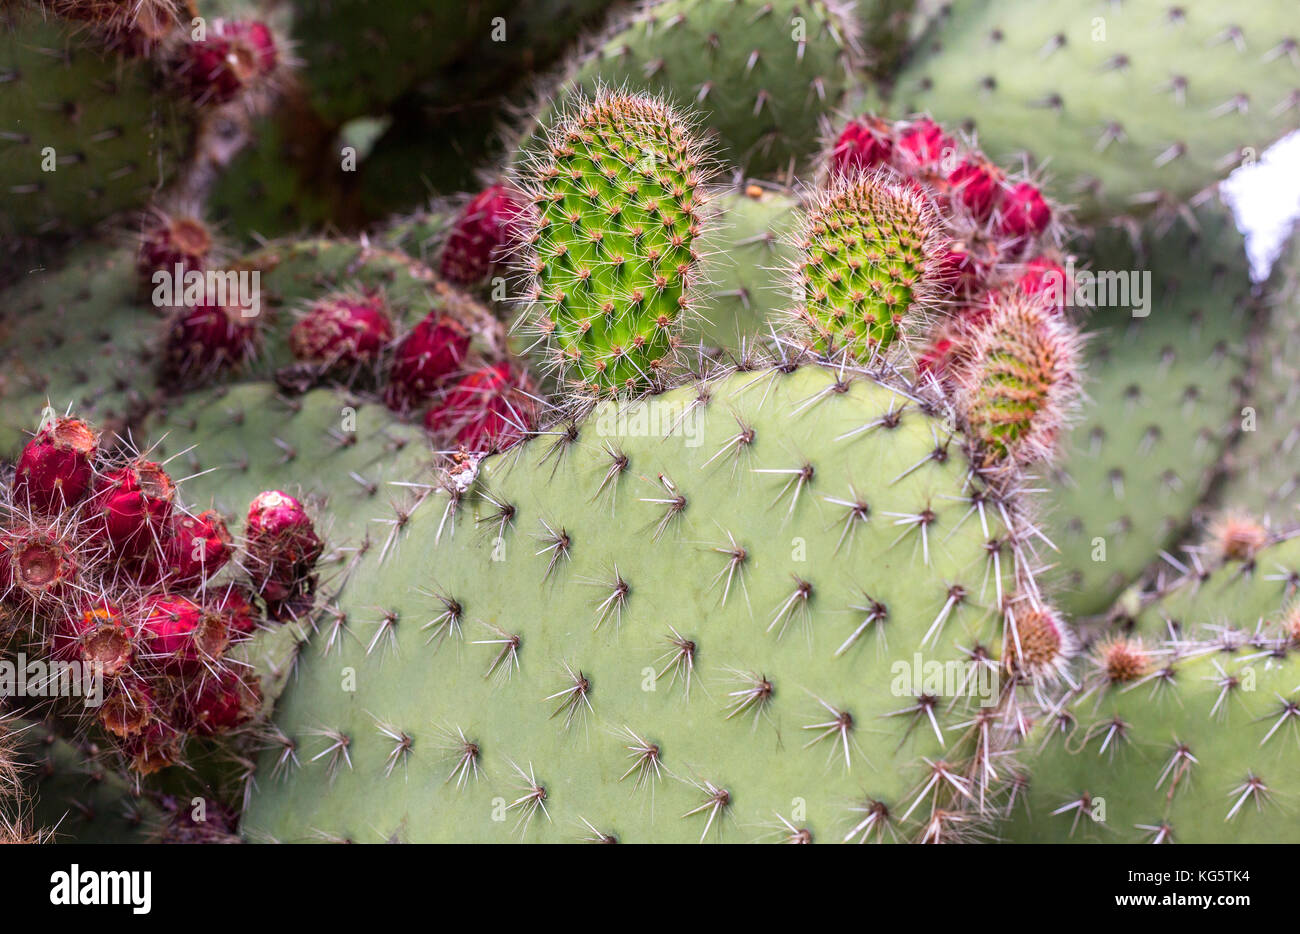 Prickly pear cactus close up with fruit in red color, cactus spines. - Stock Image